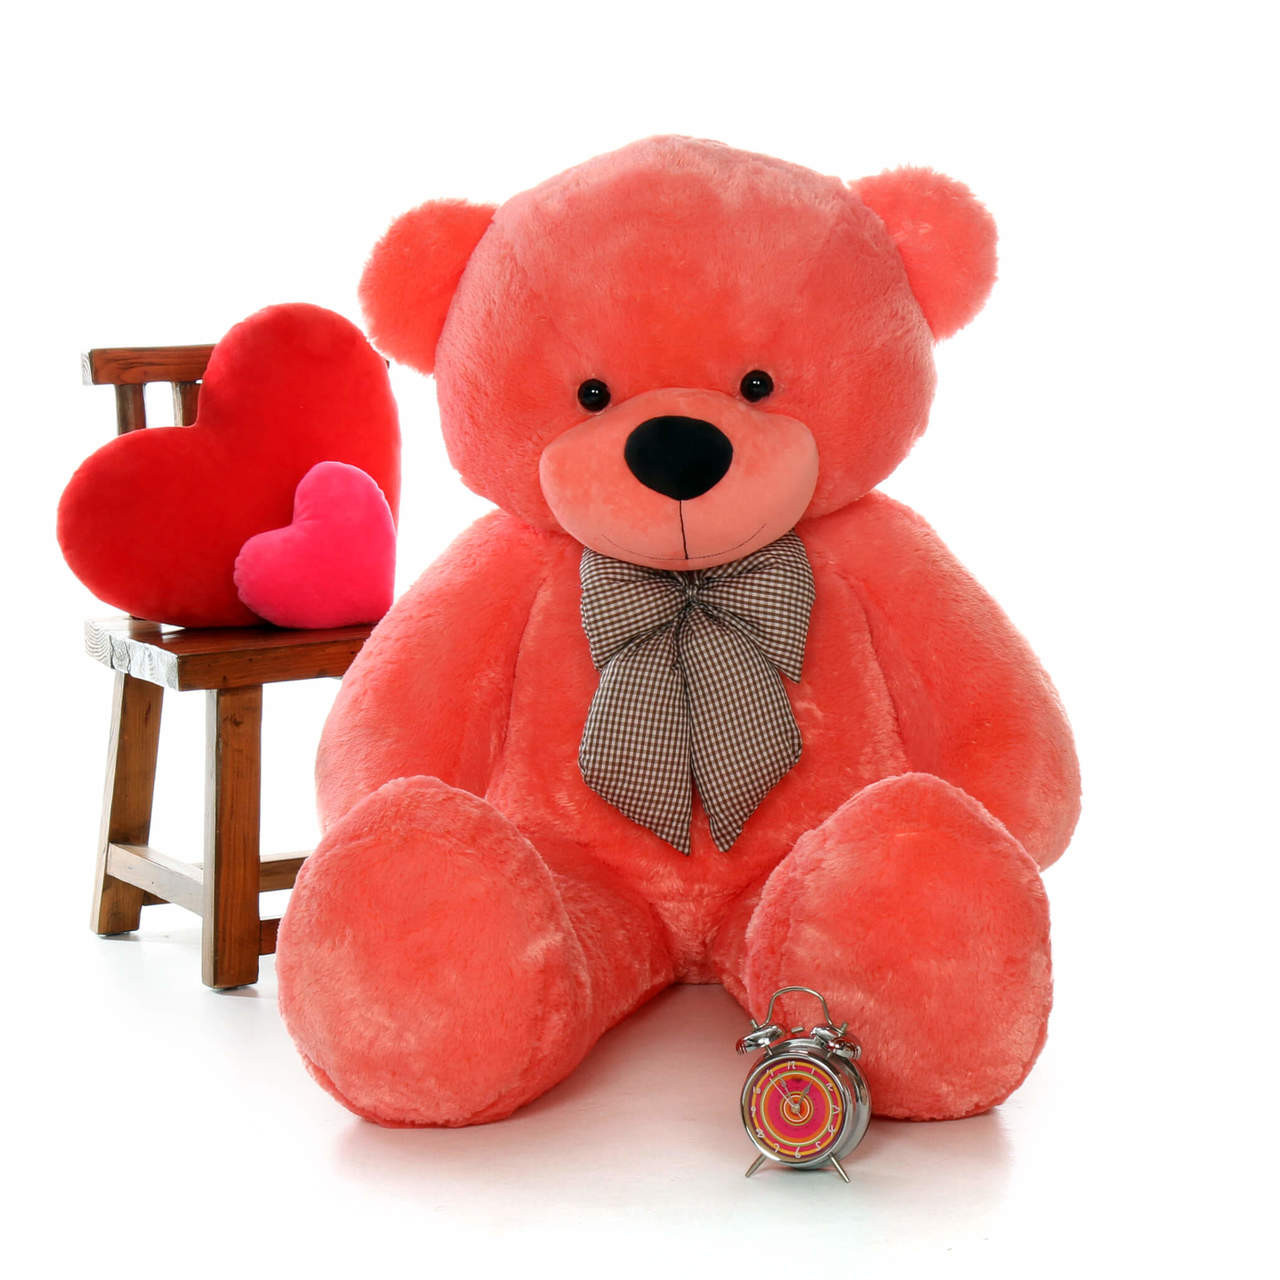 60 Inch Giant Bubble Gum Pink Teddy Bear - Unique Valentine's Day Gift